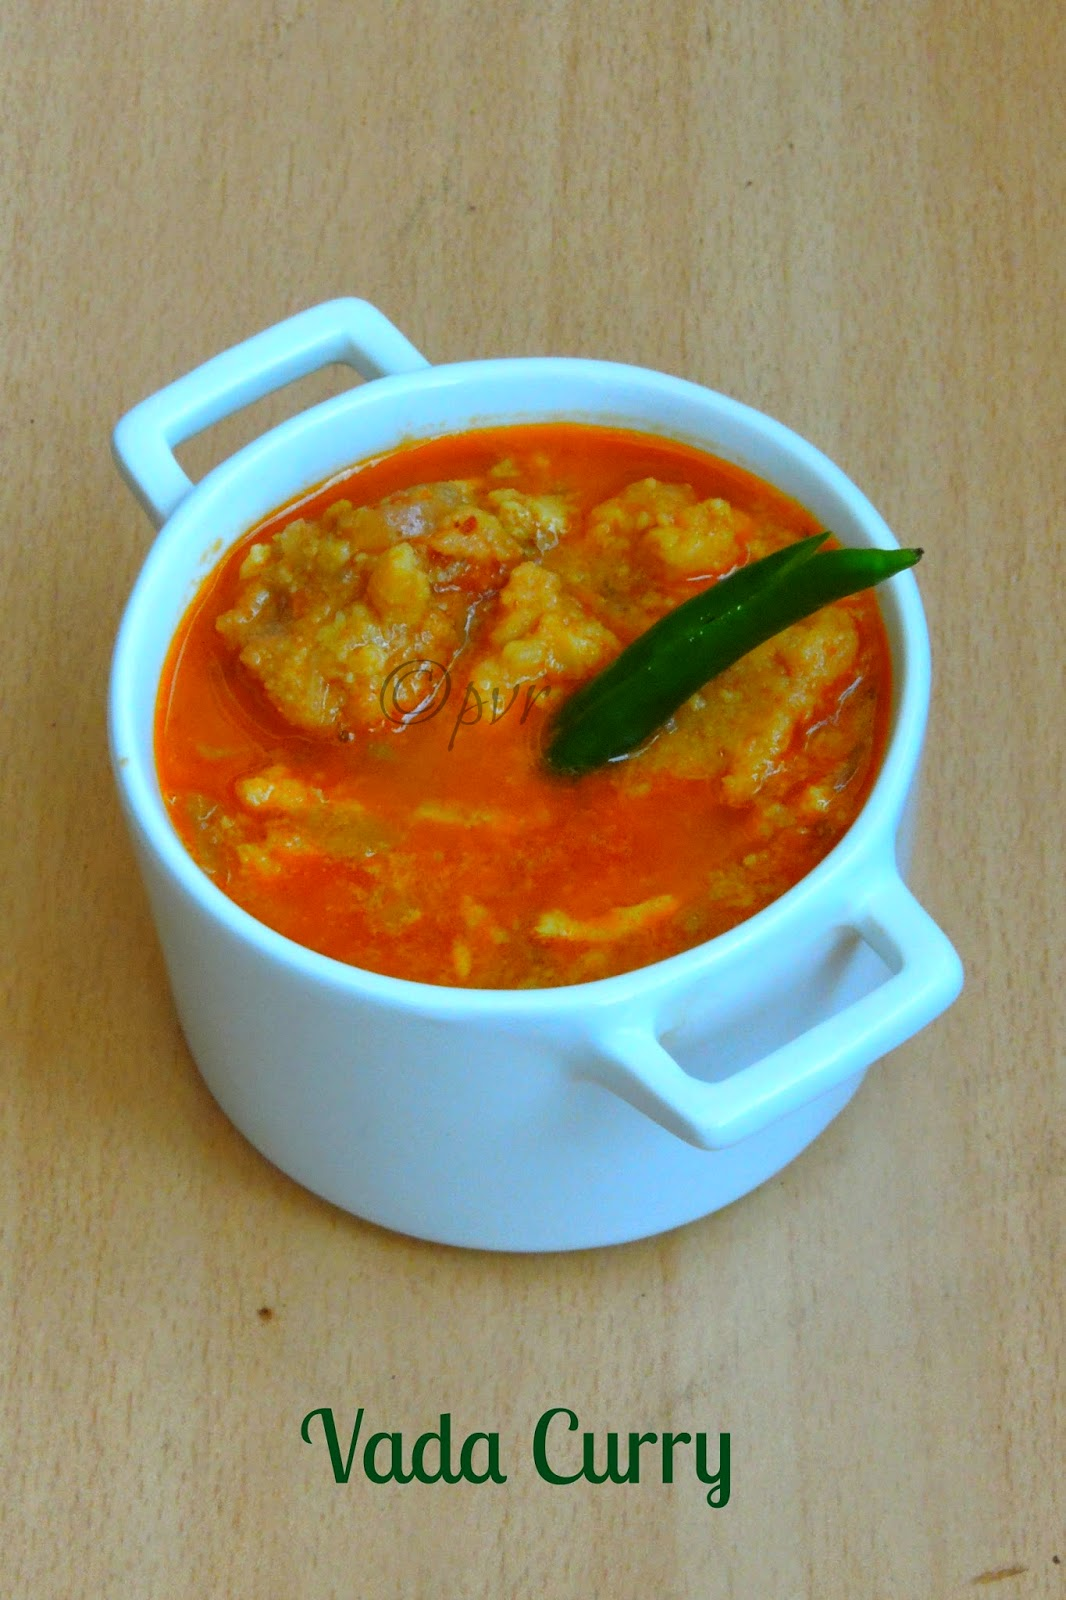 Vada curry, Saidapettai vada curry